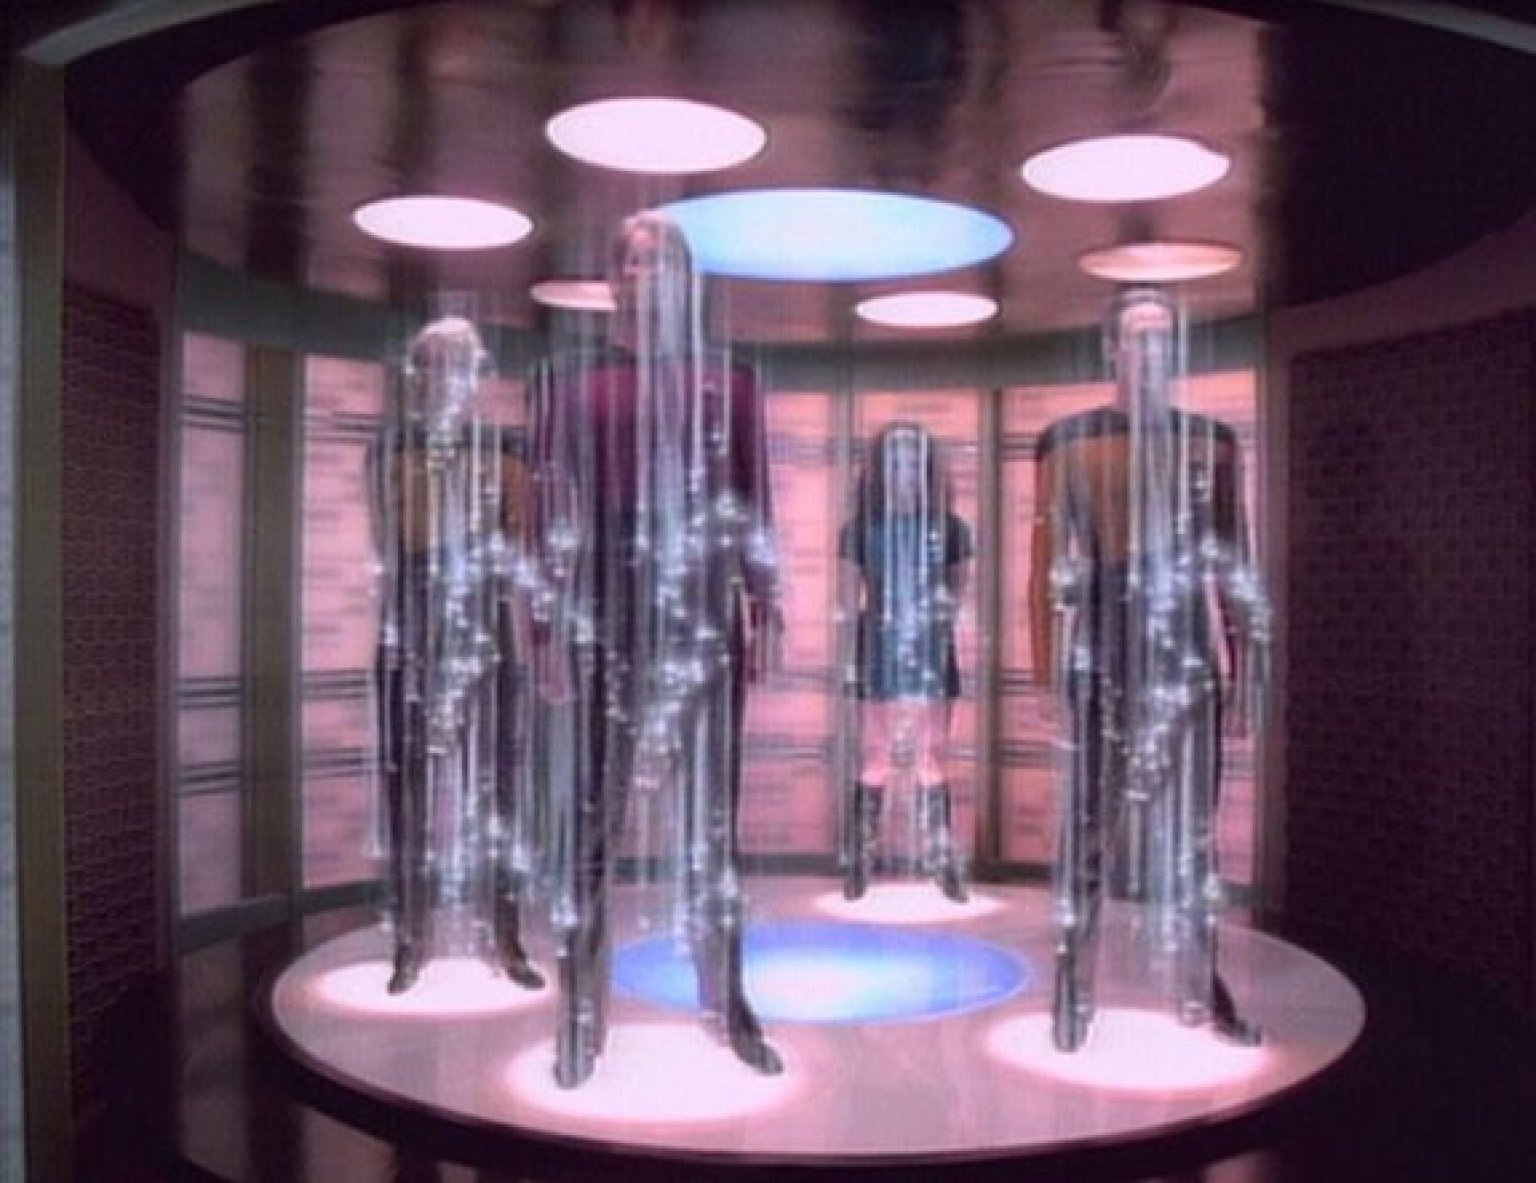 Japanese Scientists Prove Teleportation is Possible